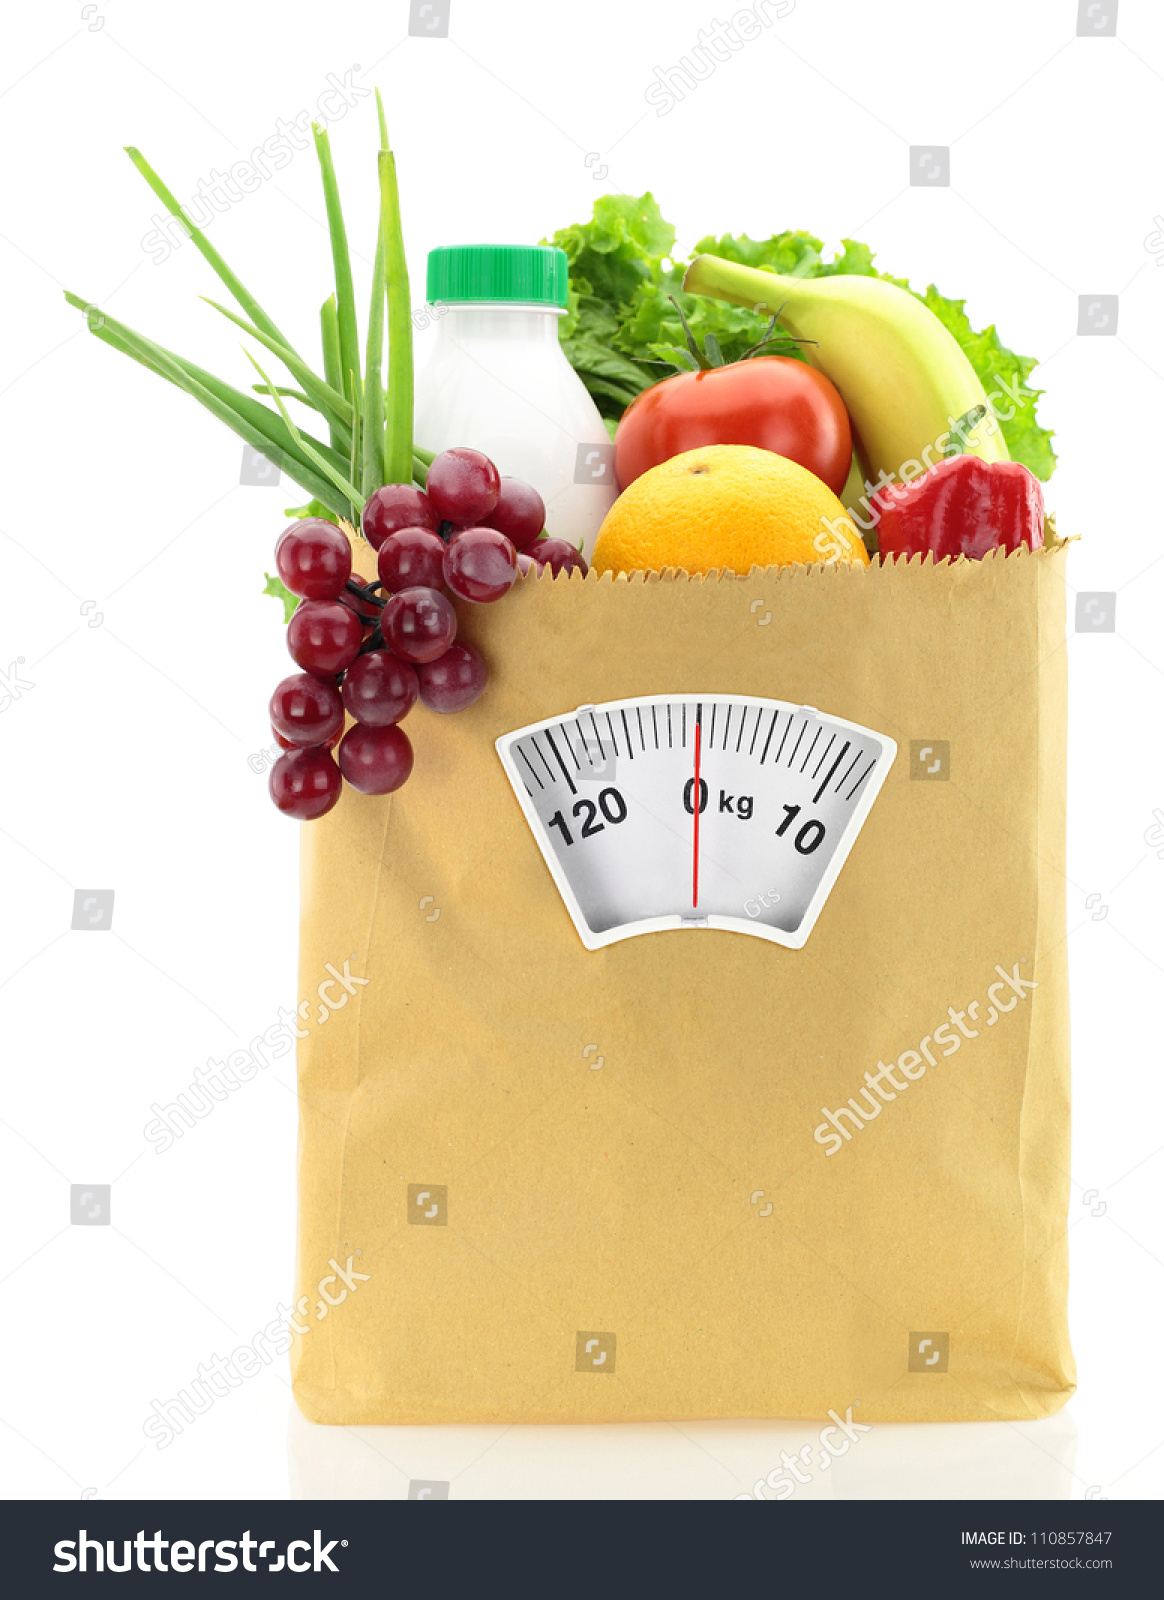 essay on nutritious food essay on nutritious food essay on nutritious food brencis 05 2016 supporting the a common reason that they cannot have a healthy